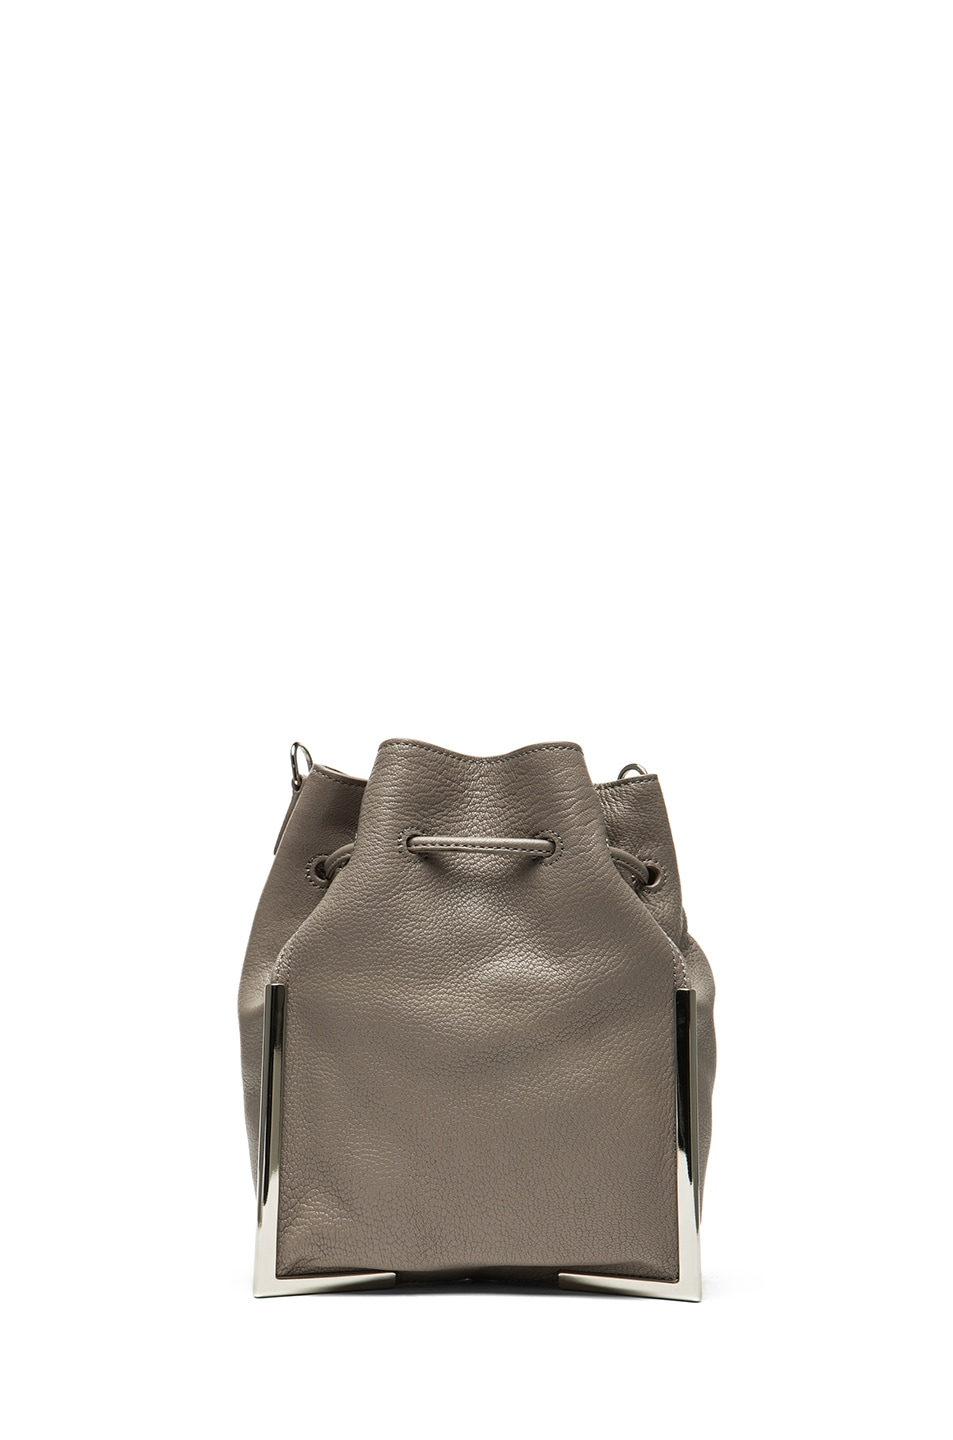 Image 2 of 3.1 phillip lim Small Scout Crossbody in Pebble